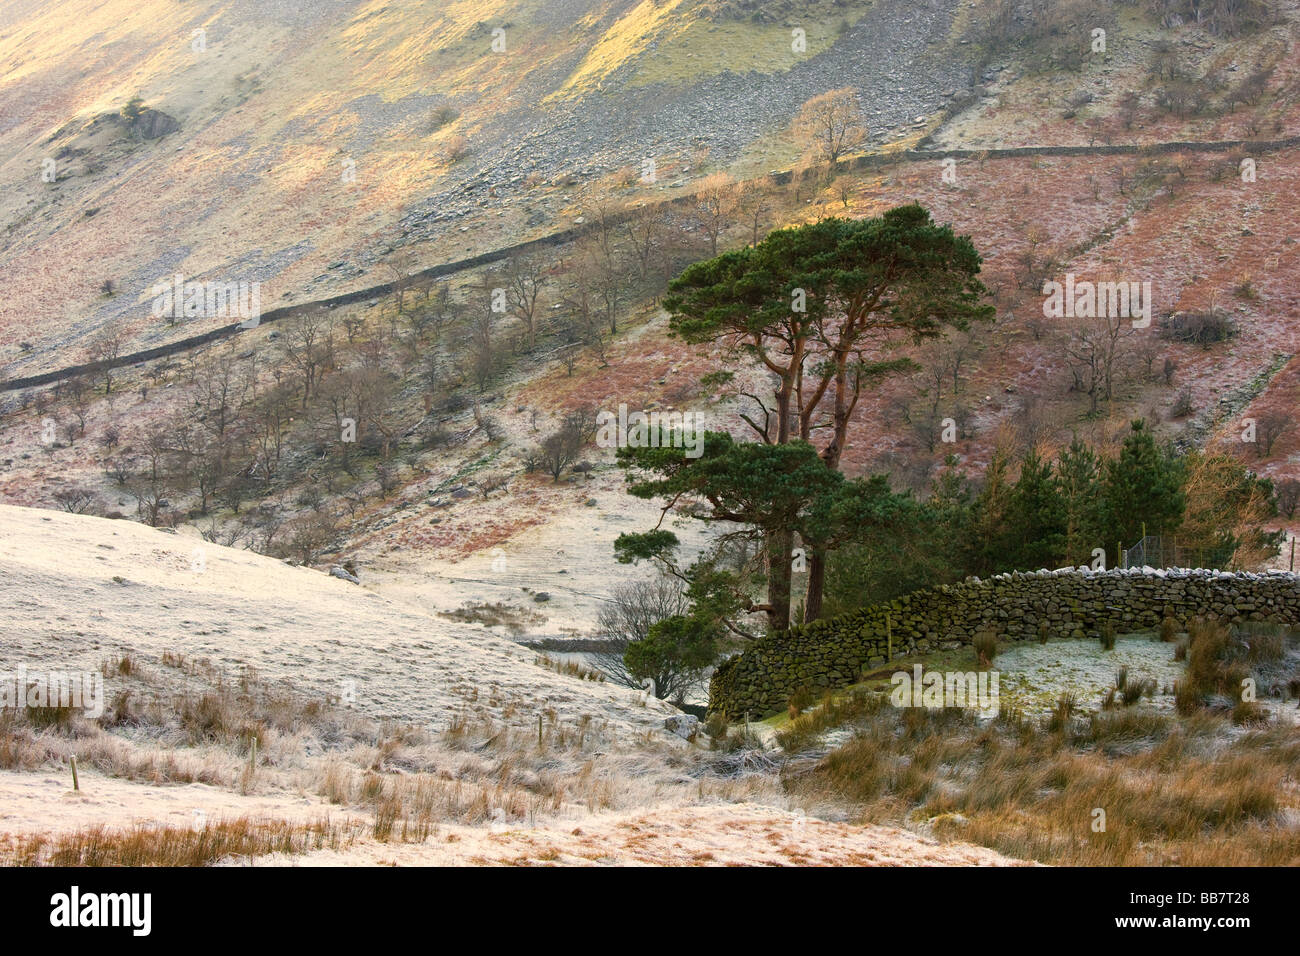 Two coniferous tree and stone wall on hillside; Cumbria, England, UK - Stock Image